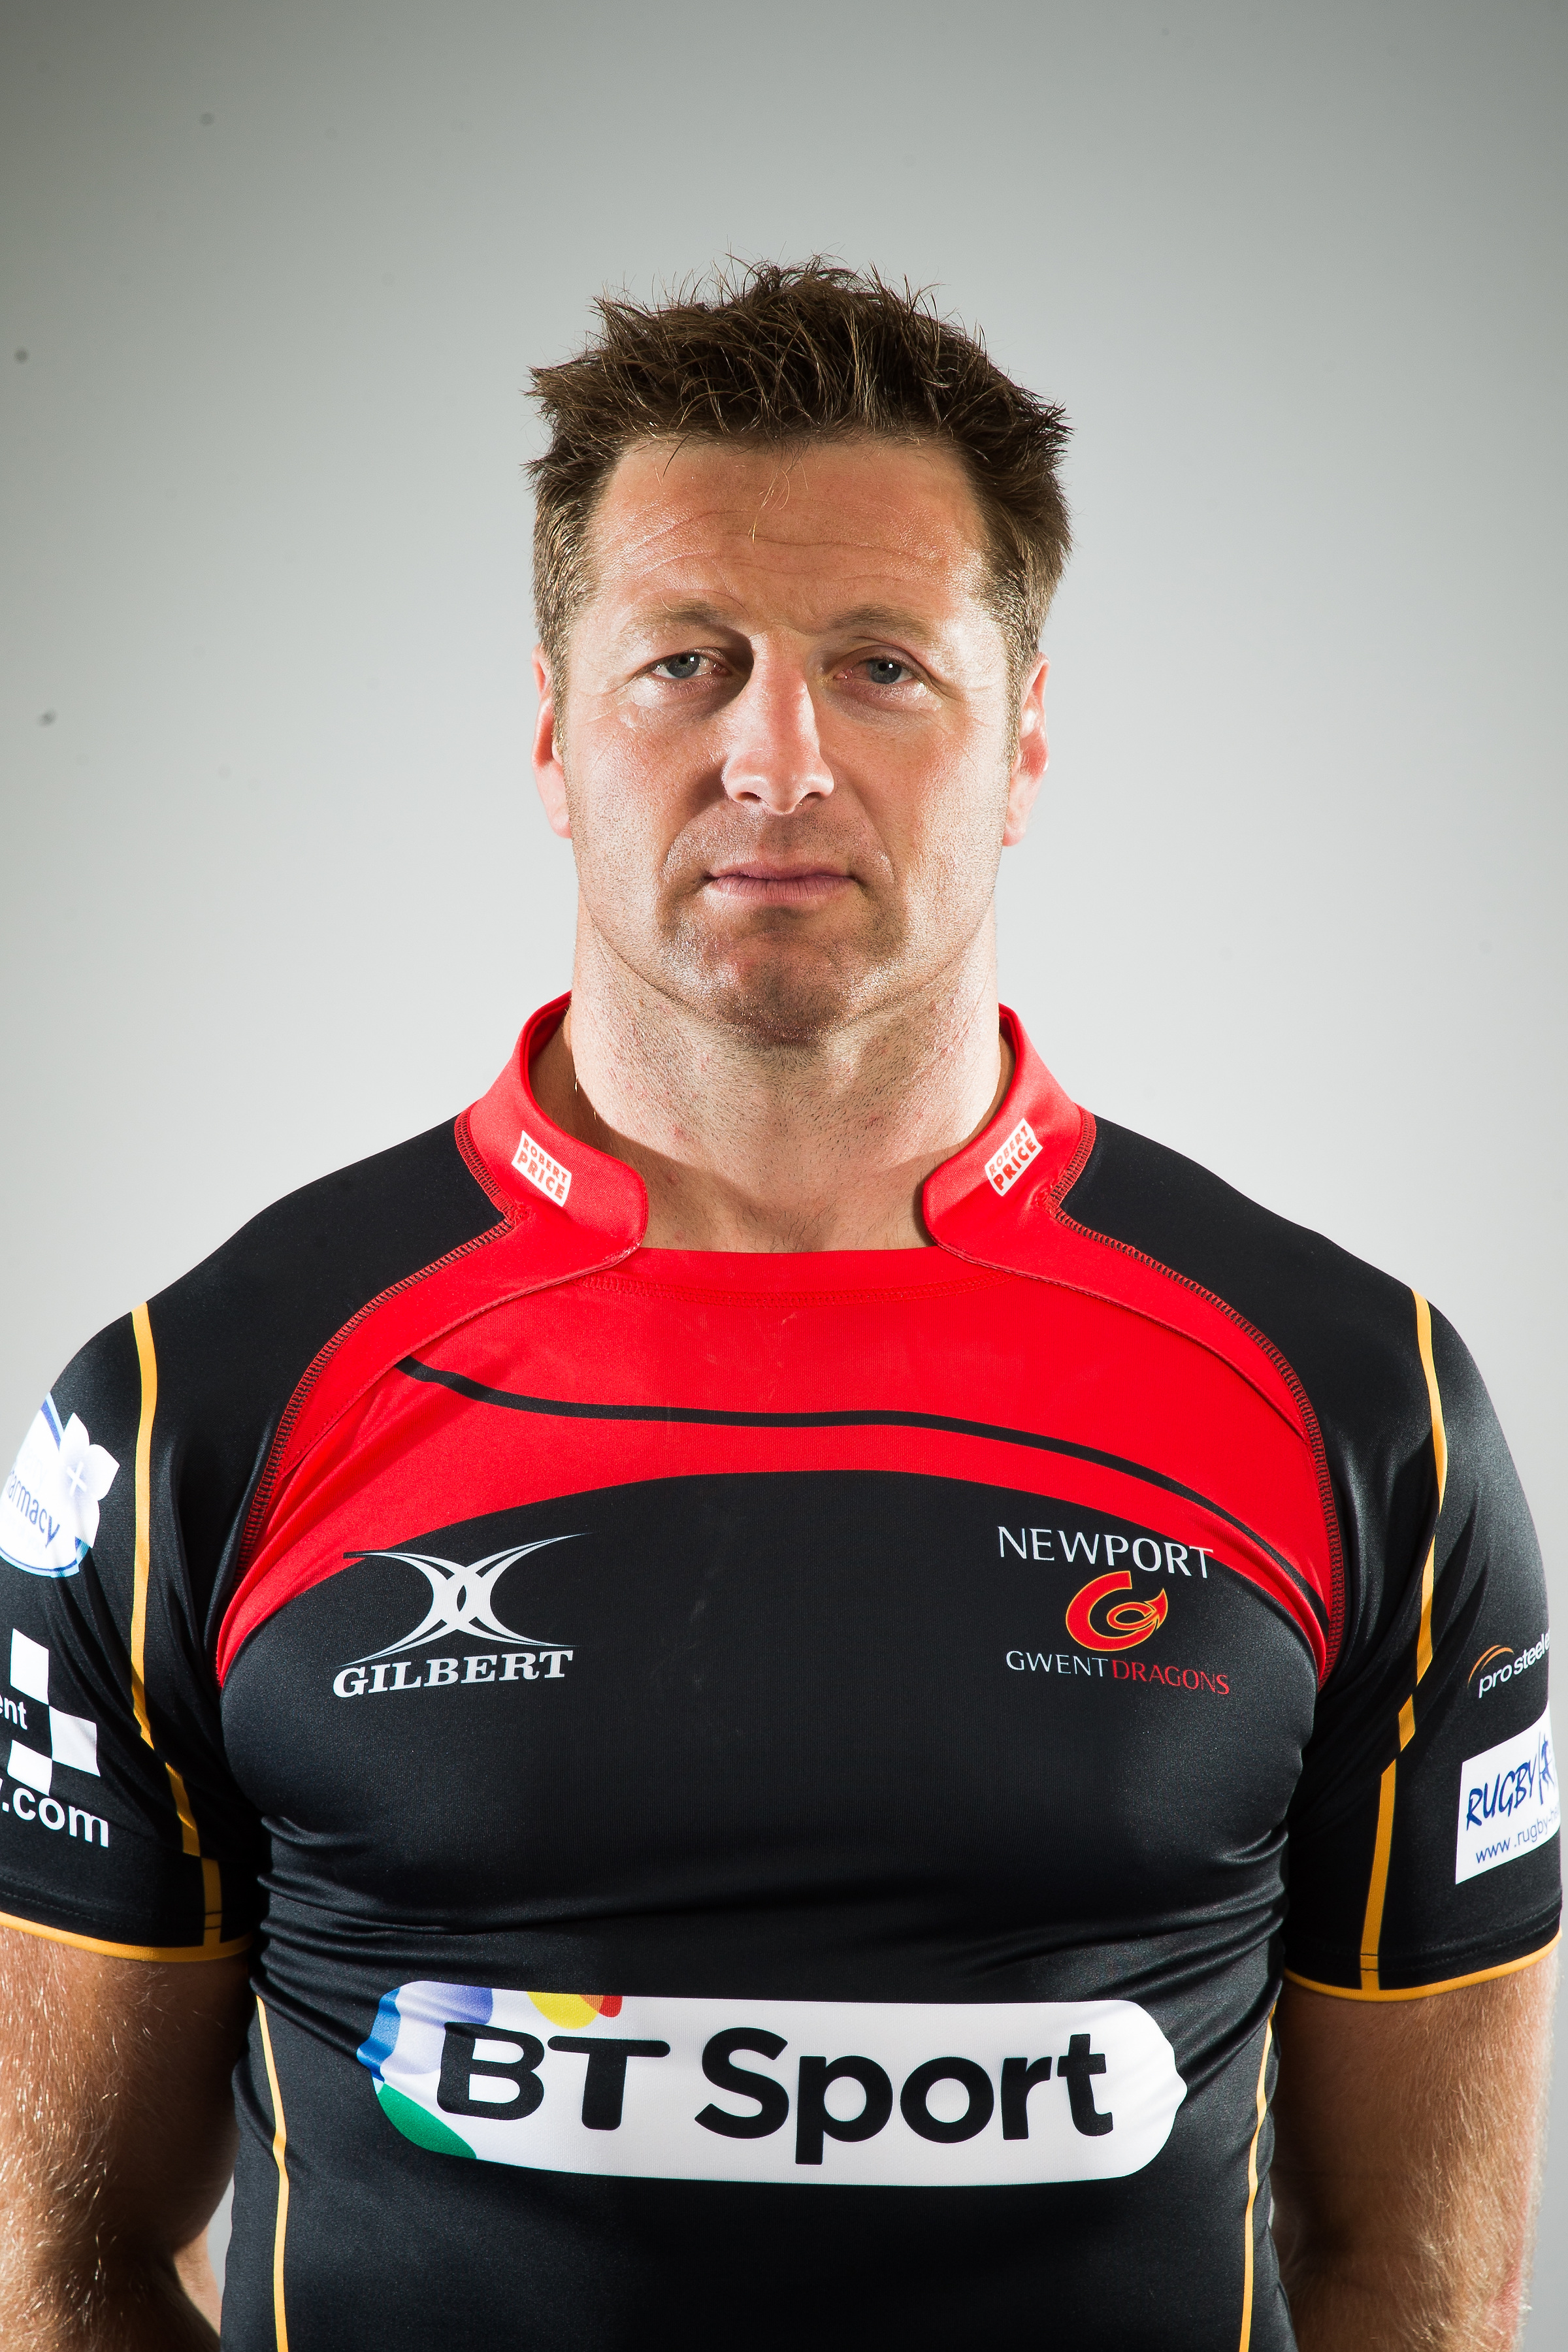 Ian Gough- Thanks to the Dragons for permission to use this photo taken by Huw Evans Agency in April 2014